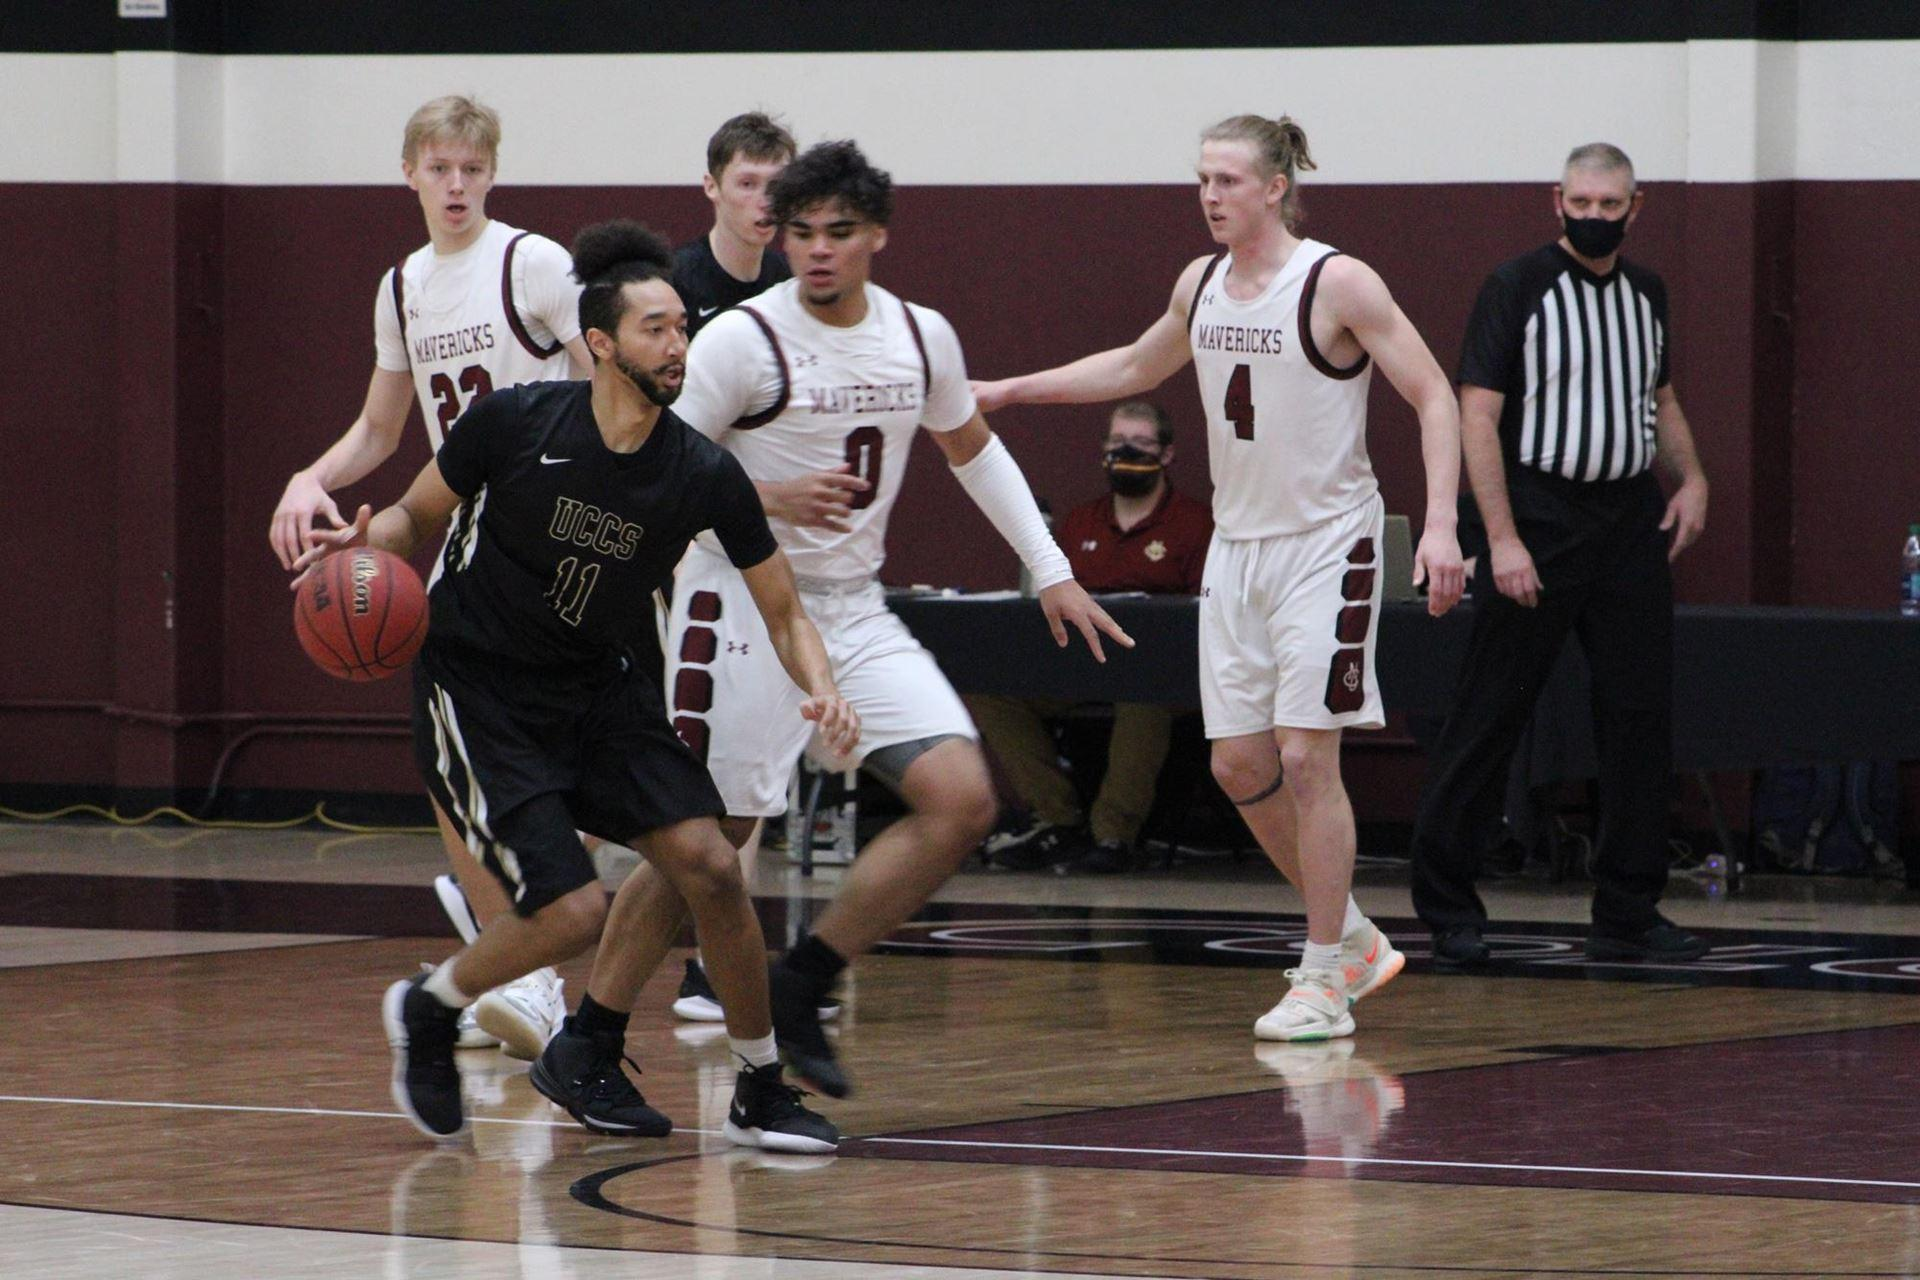 Geoff Kelly dribbling the basketball against Colorado Mesa defenders